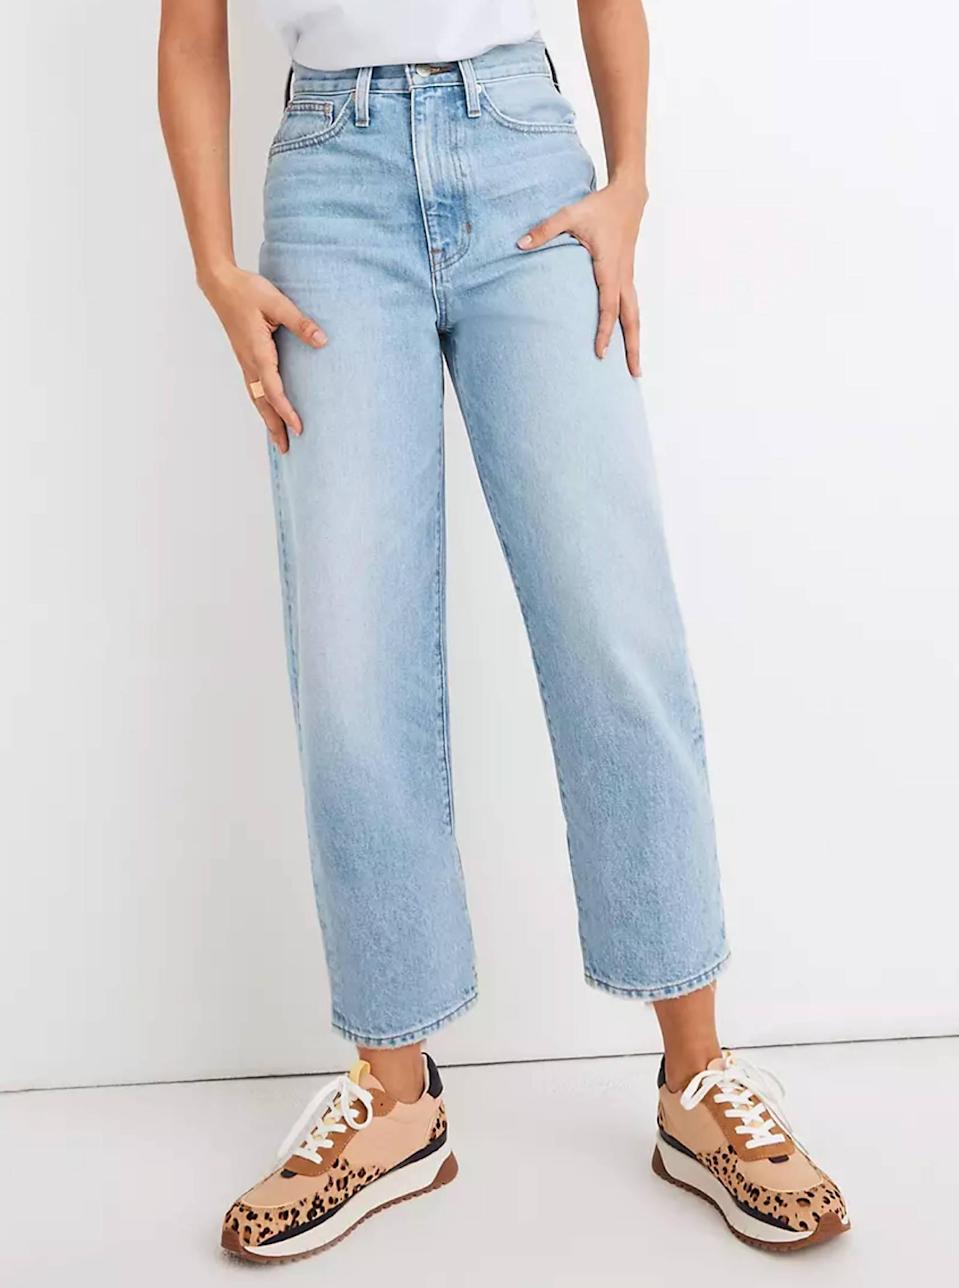 """$118, Madewell. <a href=""""https://www.madewell.com/balloon-jeans-in-datewood-wash-MB942.html"""" rel=""""nofollow noopener"""" target=""""_blank"""" data-ylk=""""slk:Get it now!"""" class=""""link rapid-noclick-resp"""">Get it now!</a>"""